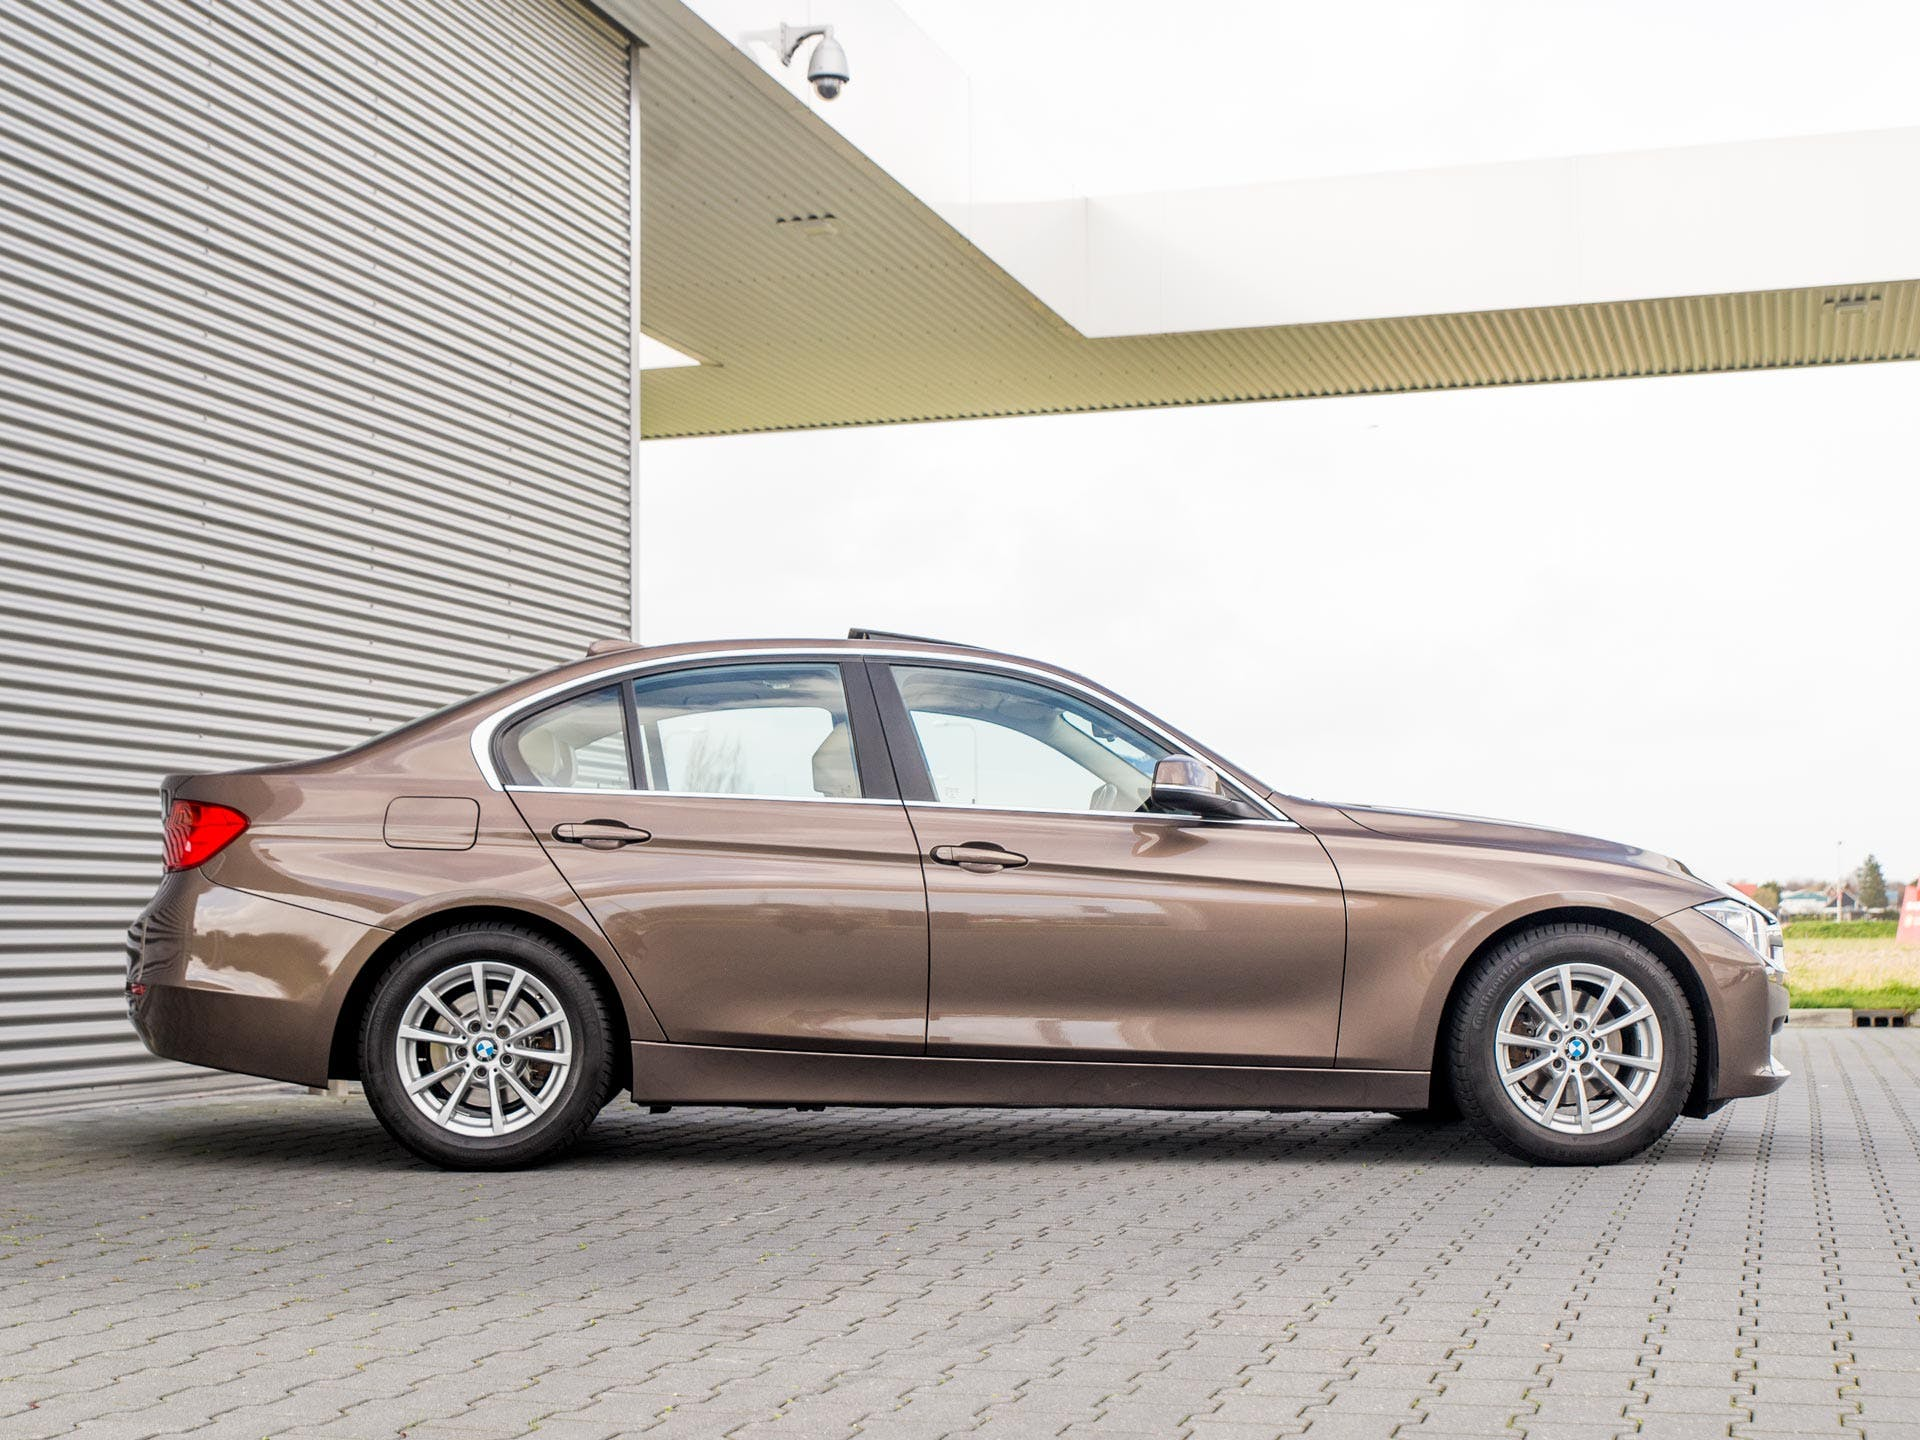 Tweedehands BMW 3 Serie 320d occasion